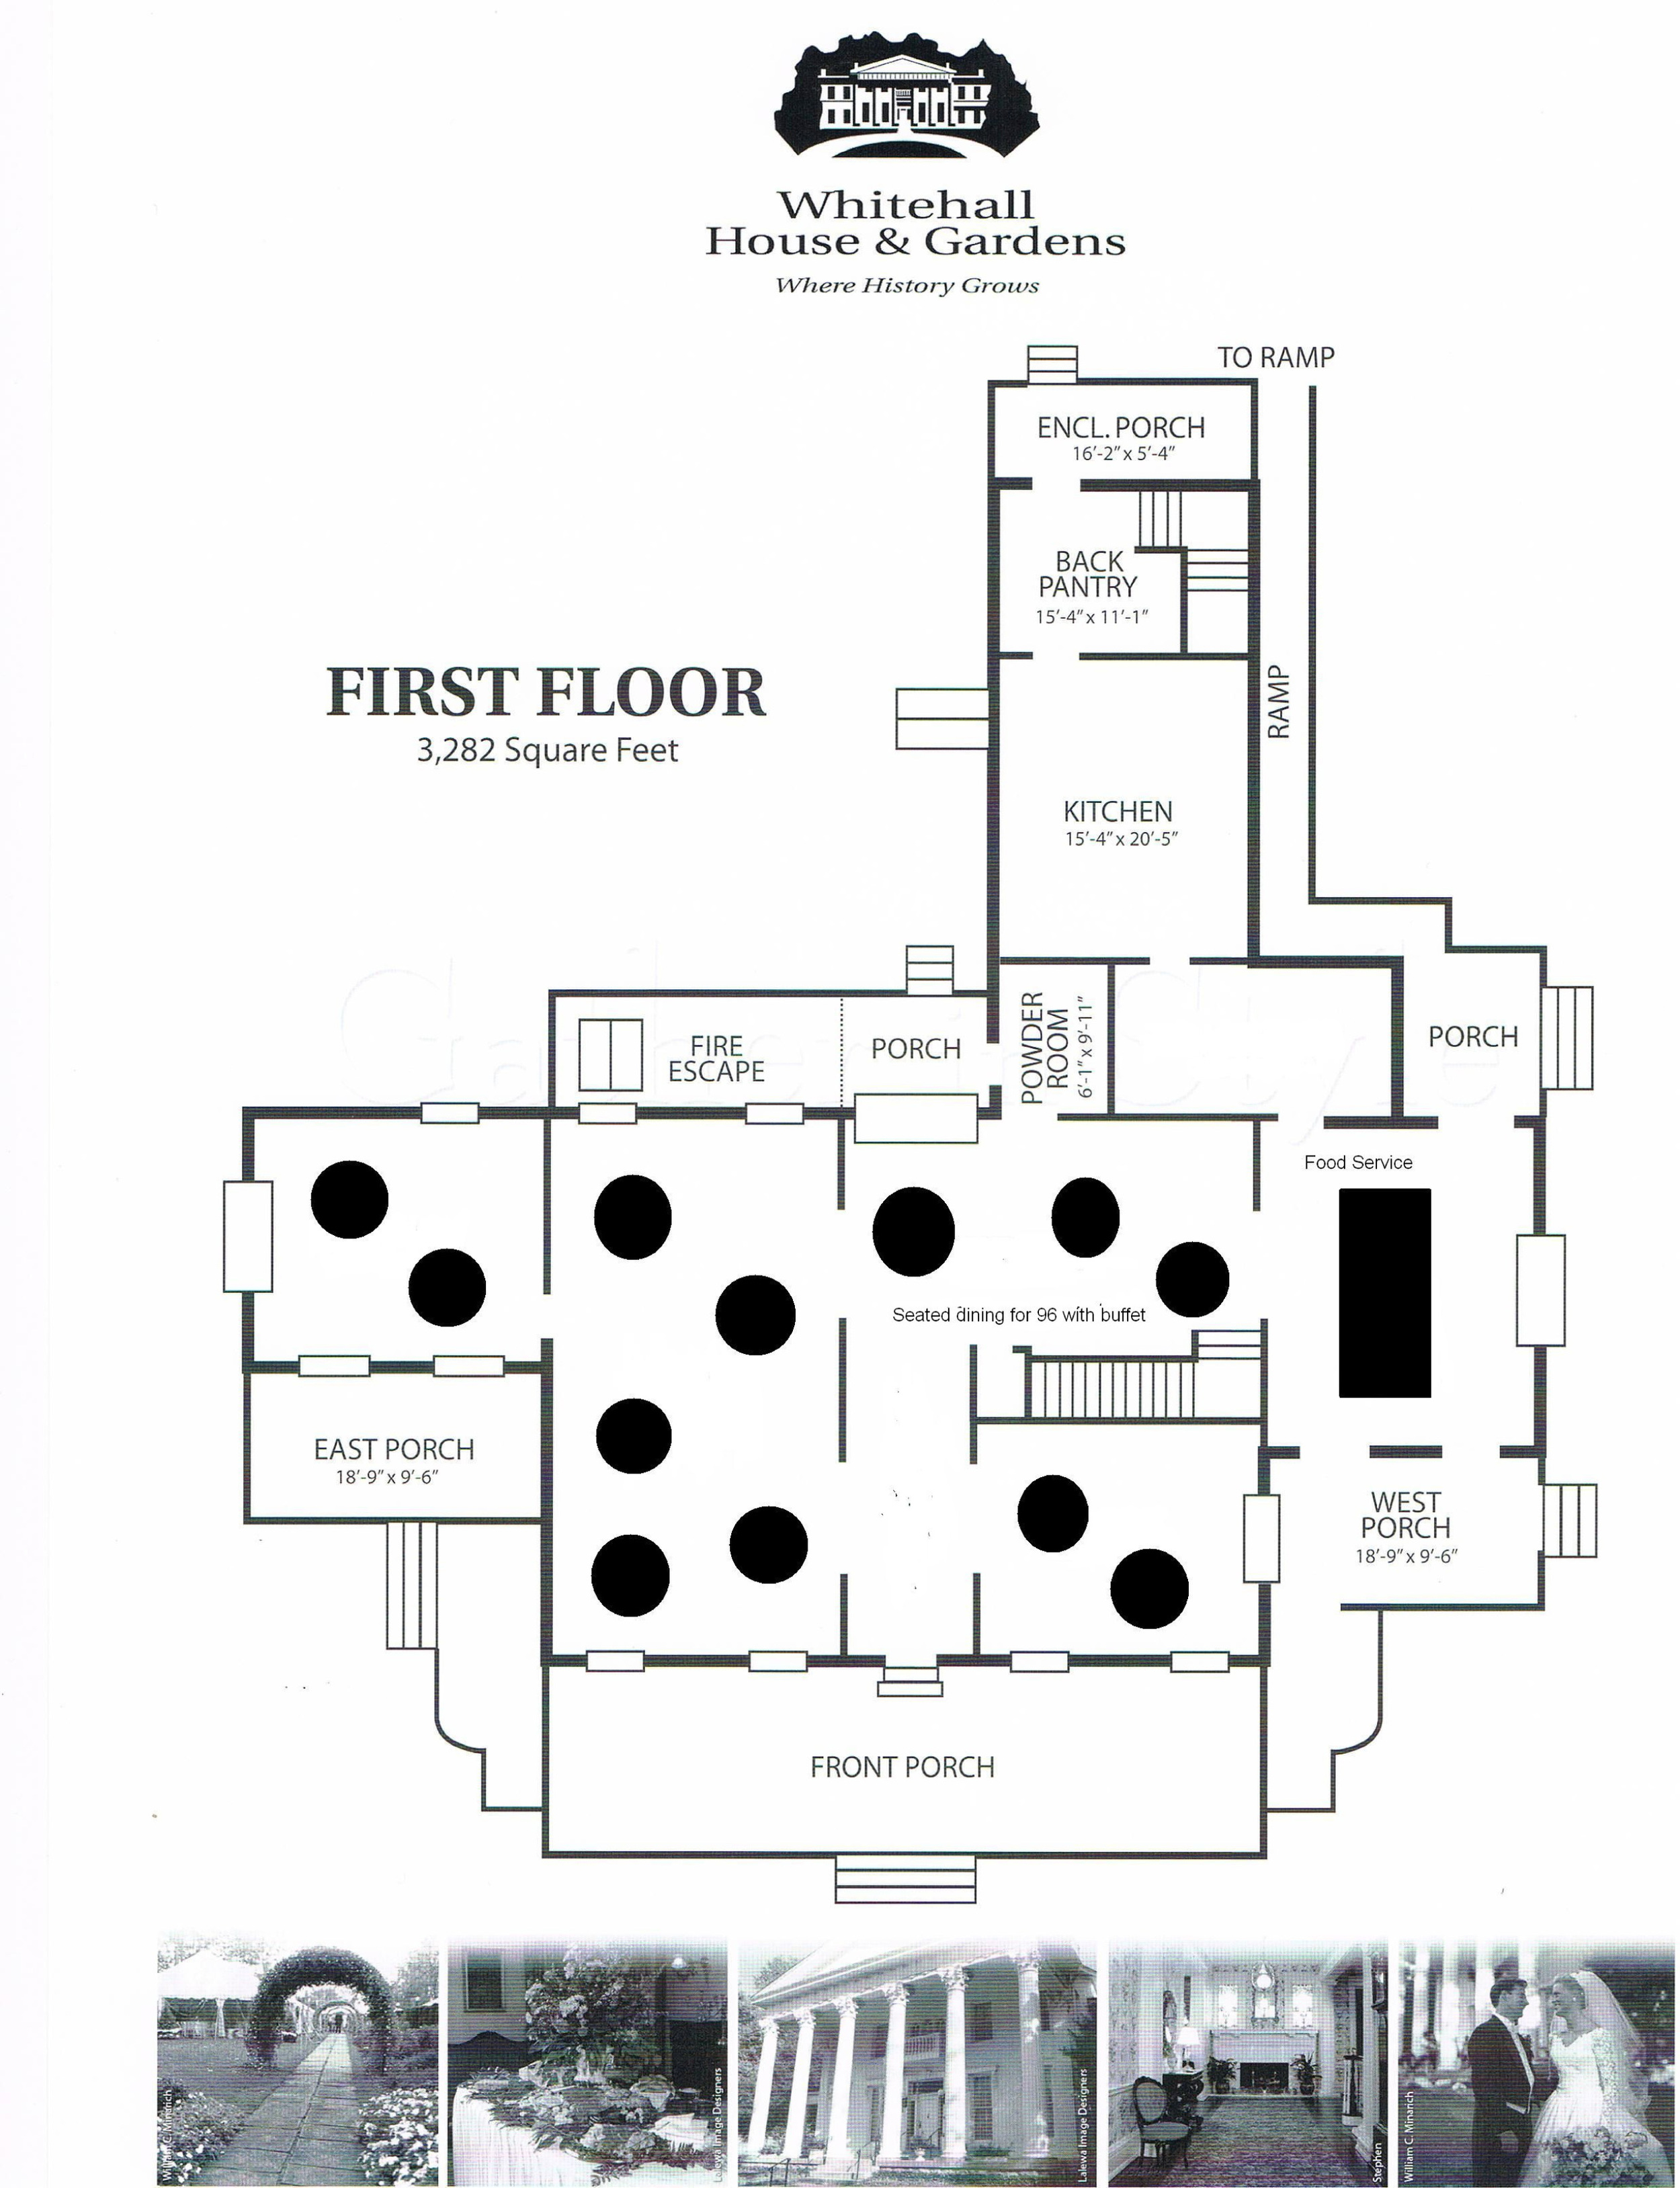 Floor Plan - Seated Dining for 96 with Buffet